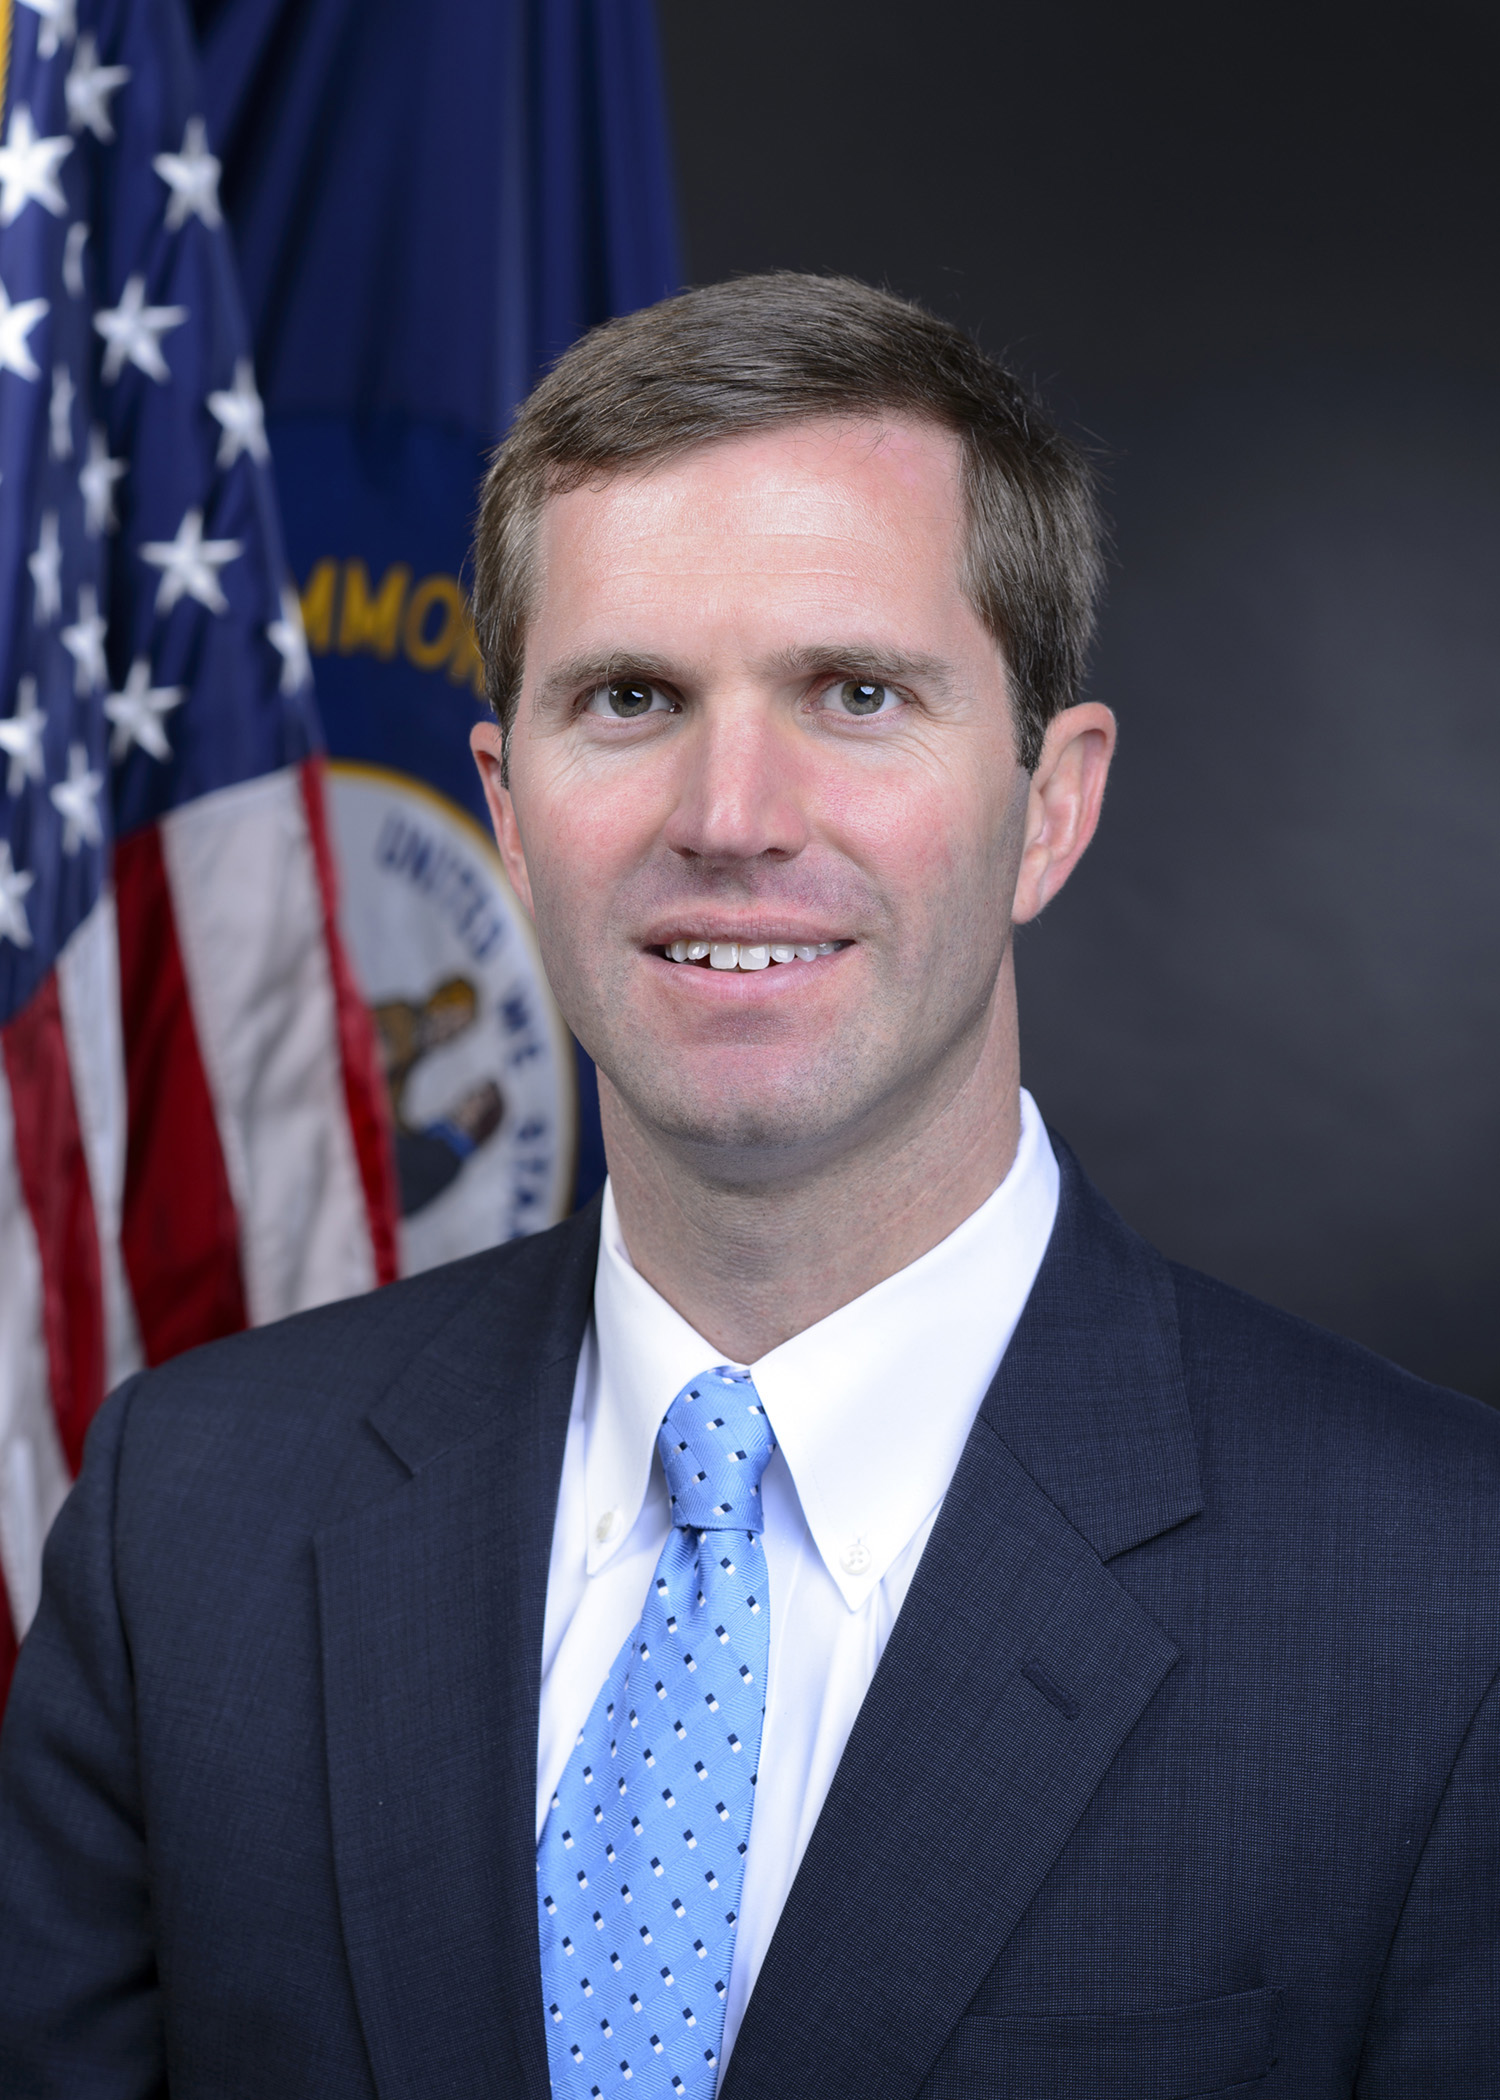 andy beshear - photo #11